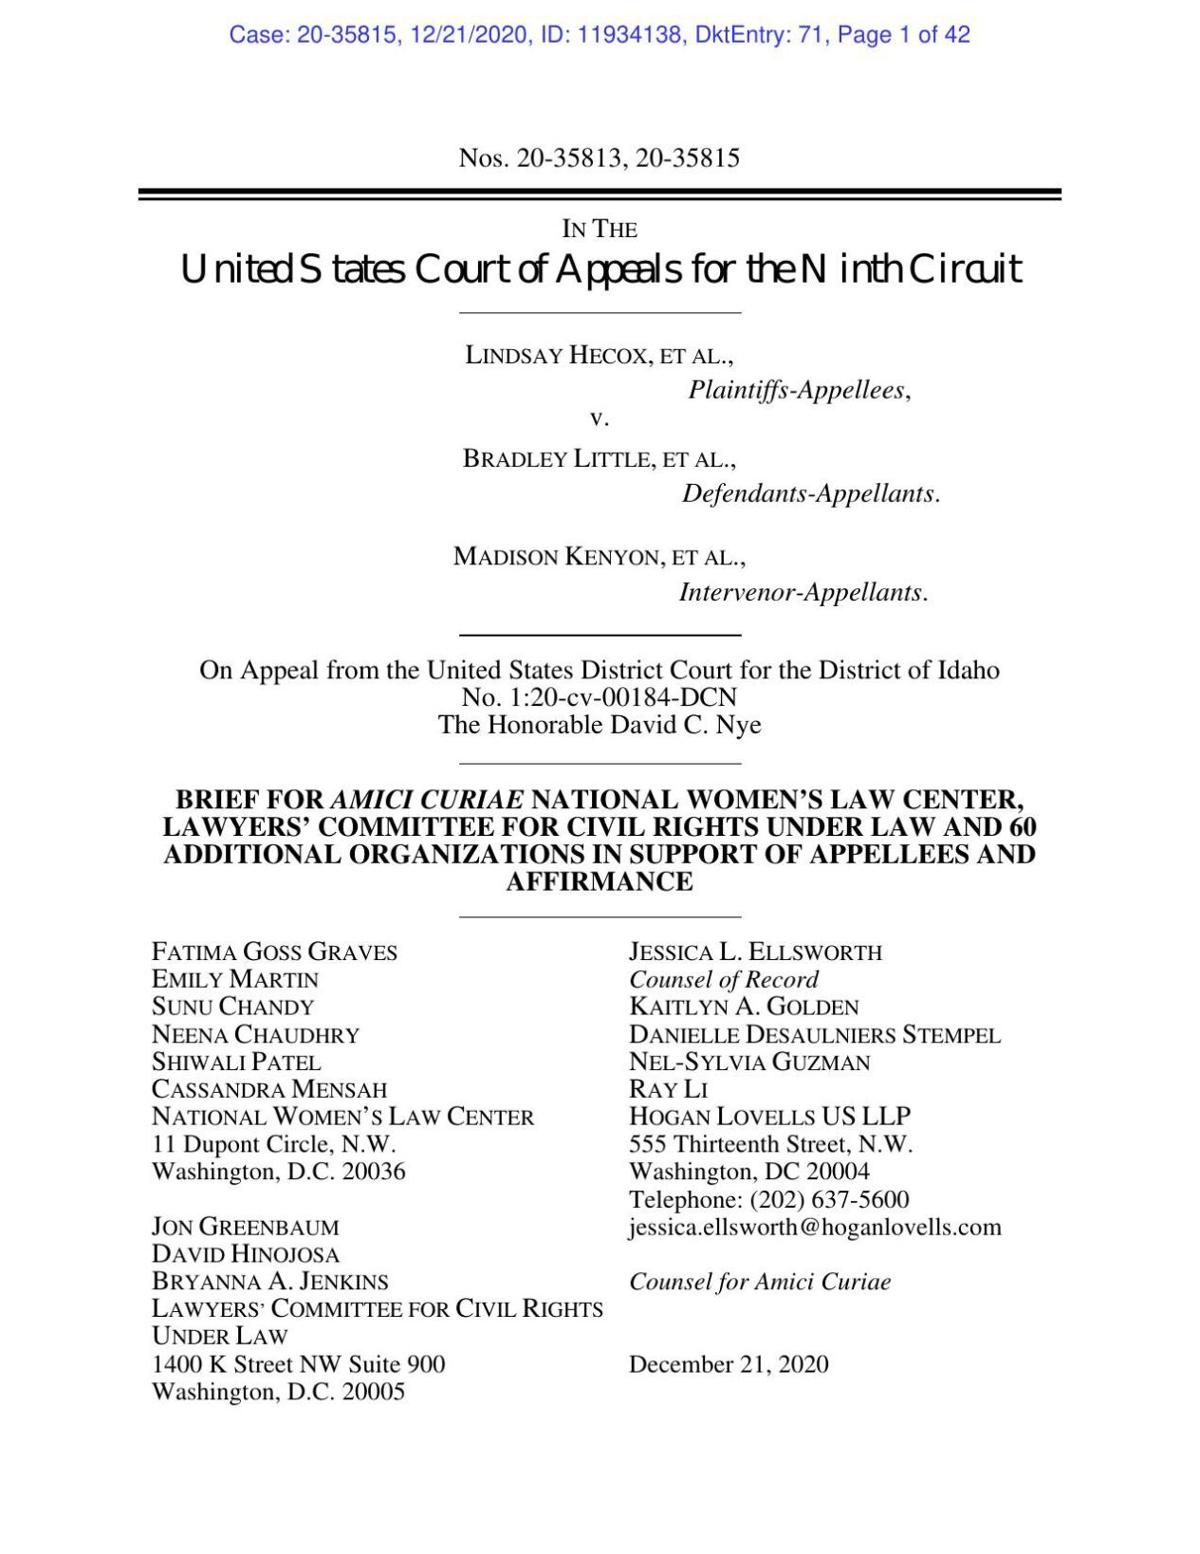 Amicus brief, various civil rights groups